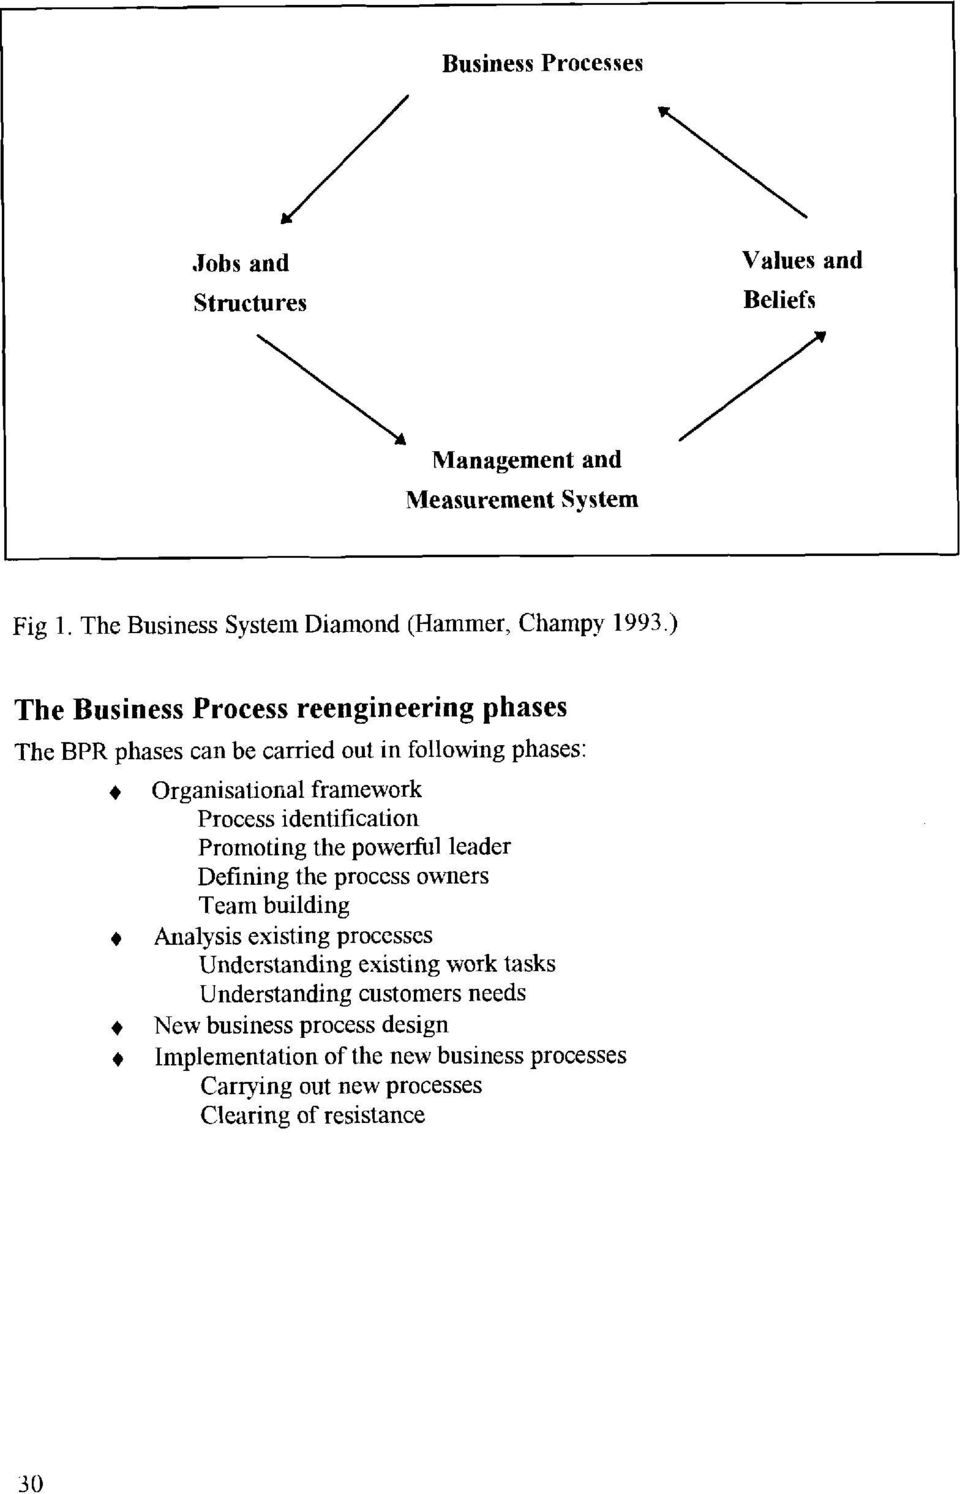 ) The Business Process reengineering phases The BPR phases can be carried out in following phases: + Organisational framework Process identification